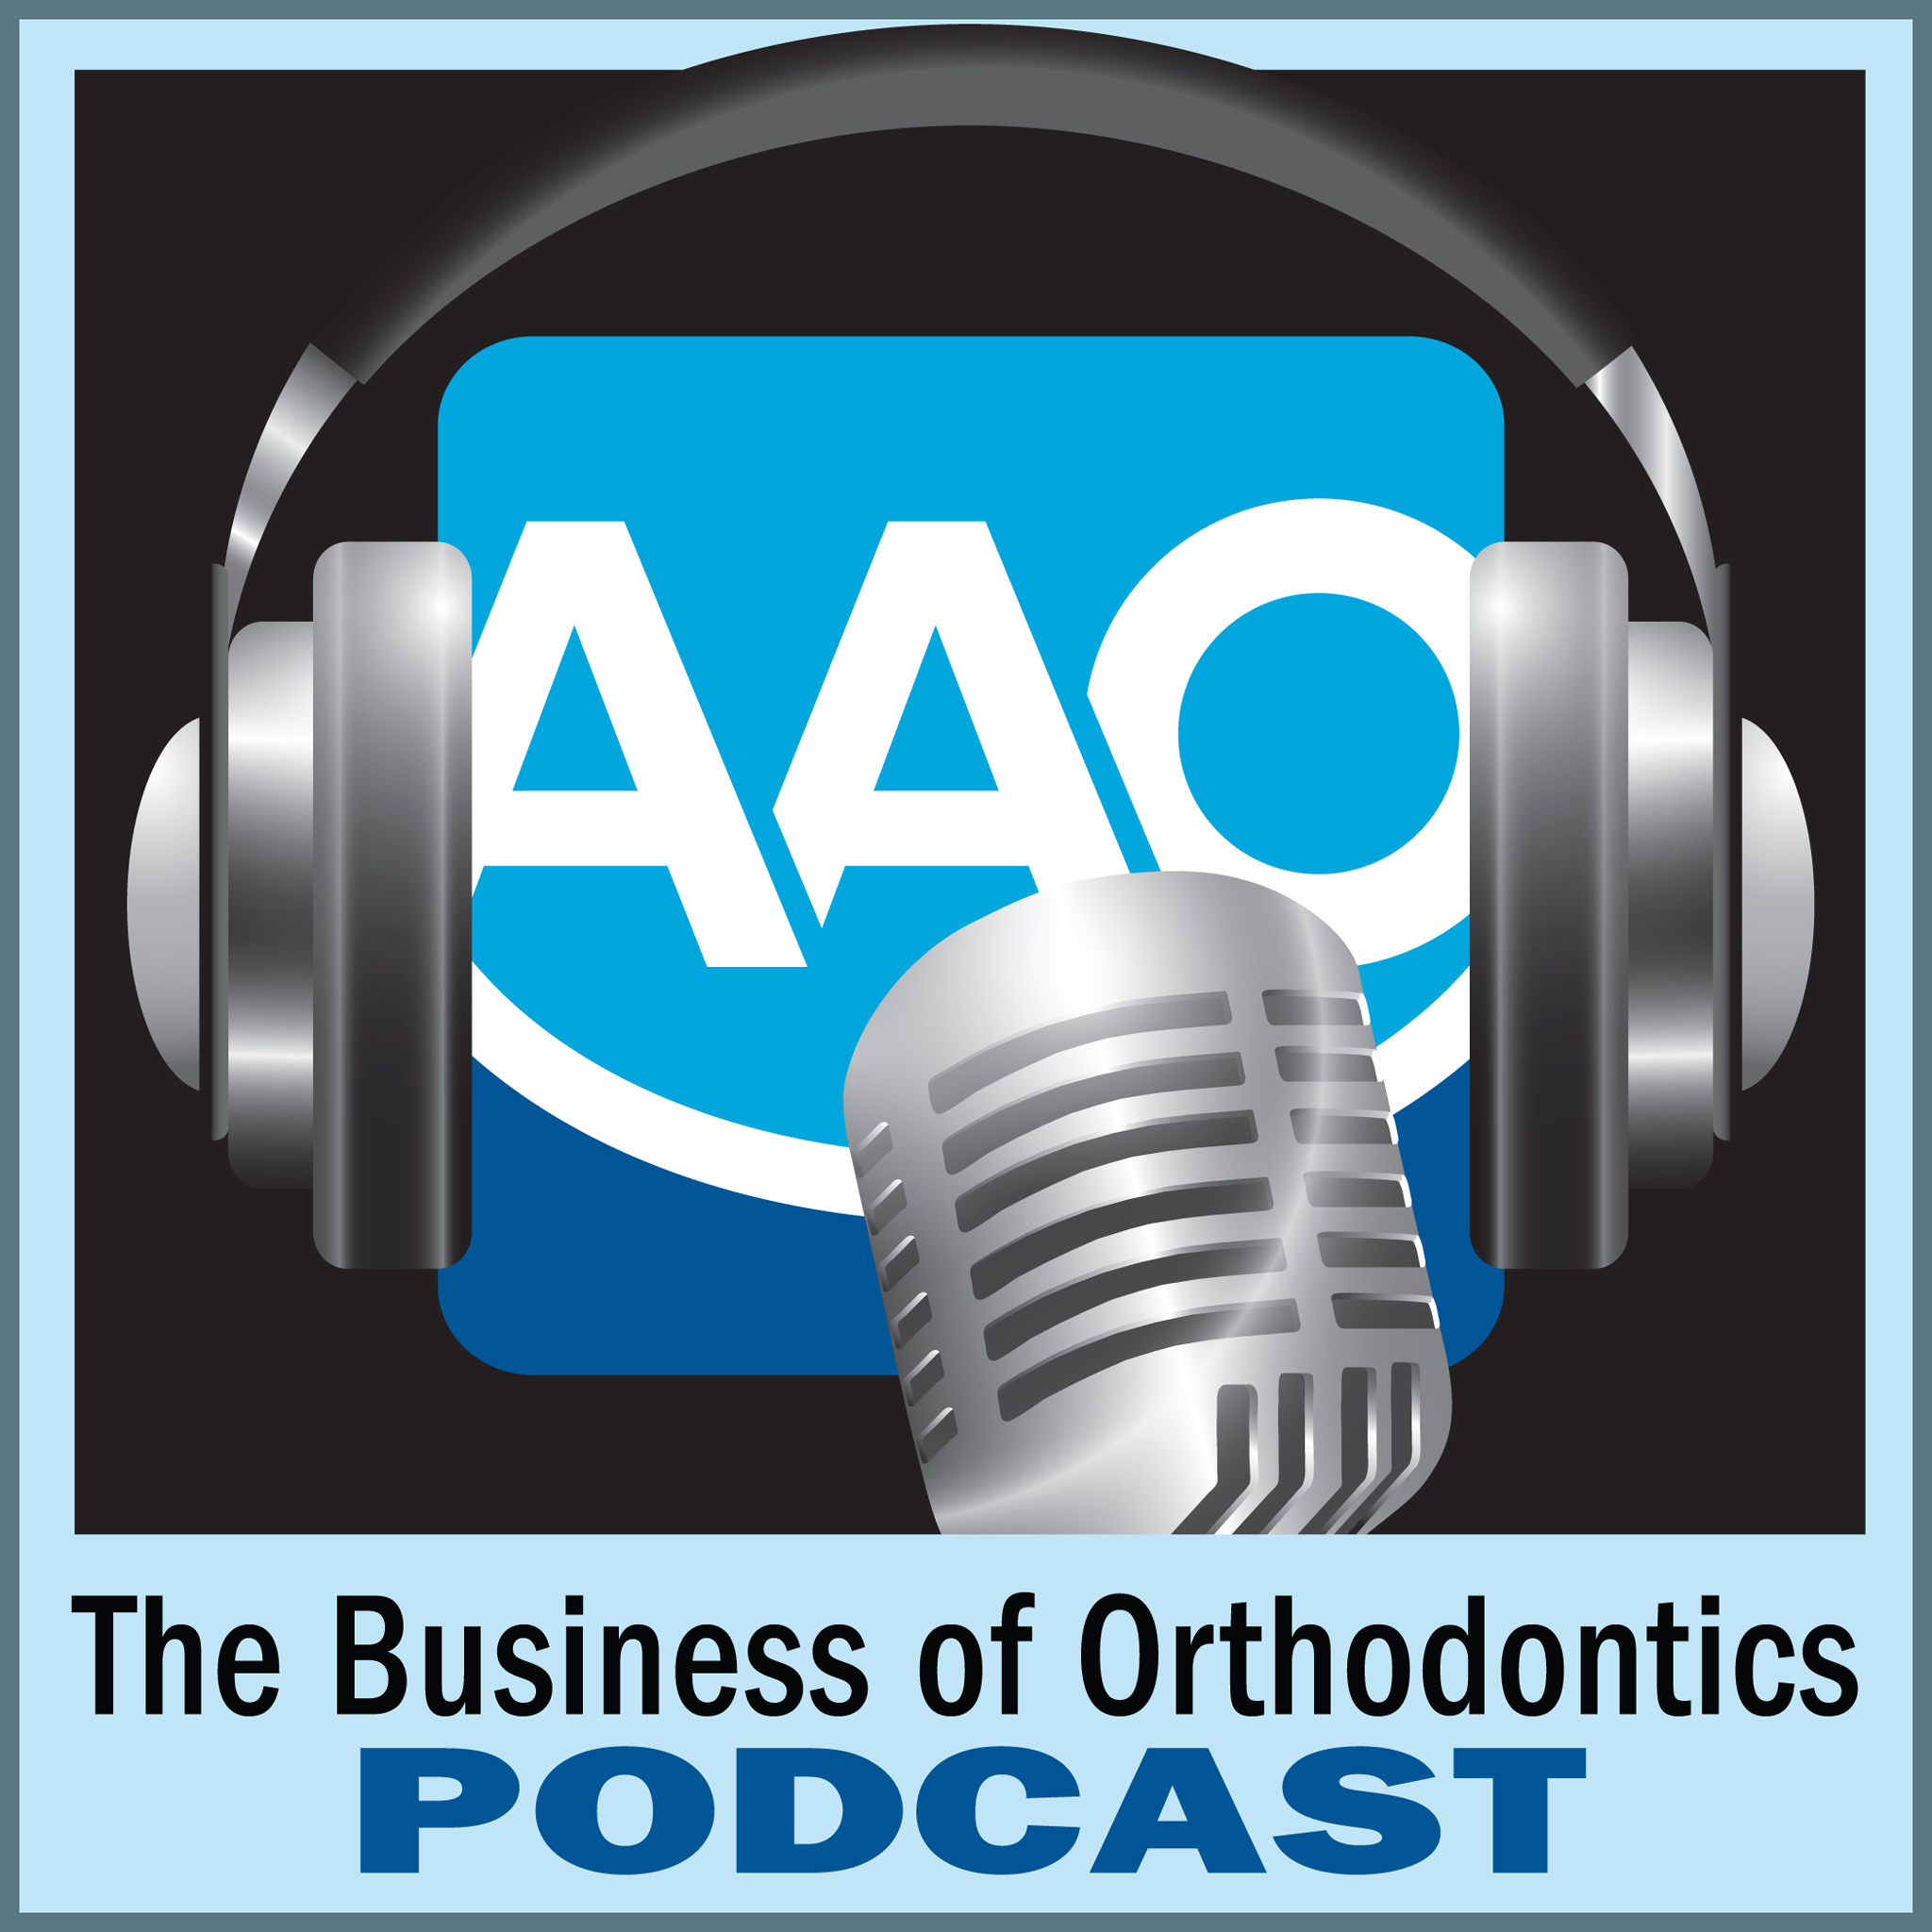 The Business of Orthodontics Podcast - Episode 20